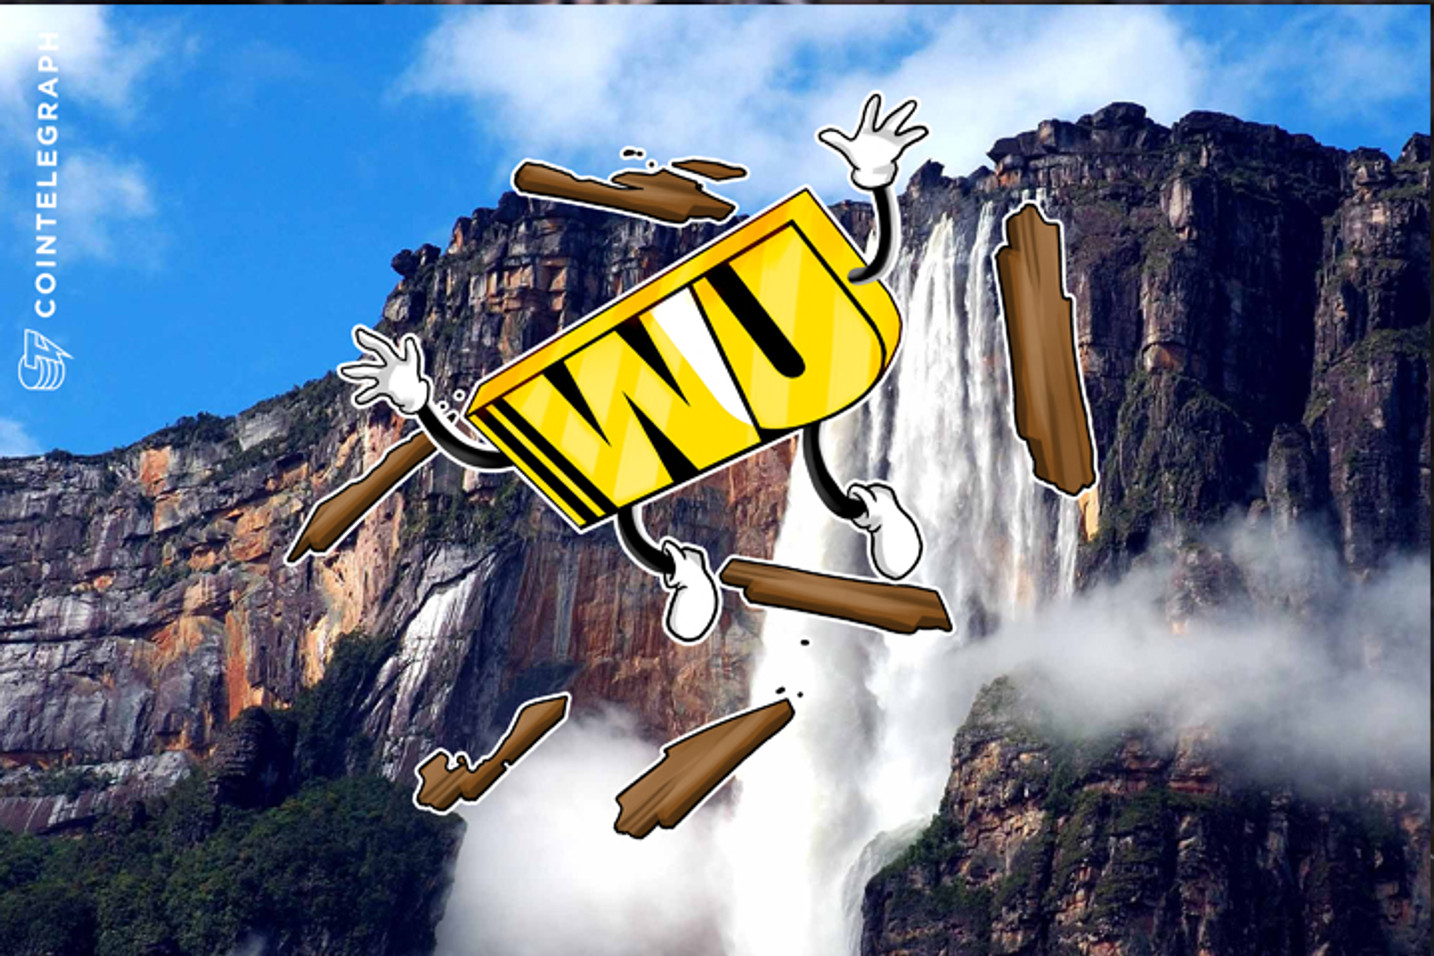 Western Union Shares Drop, Bitcoin Interest Surges in Mexico